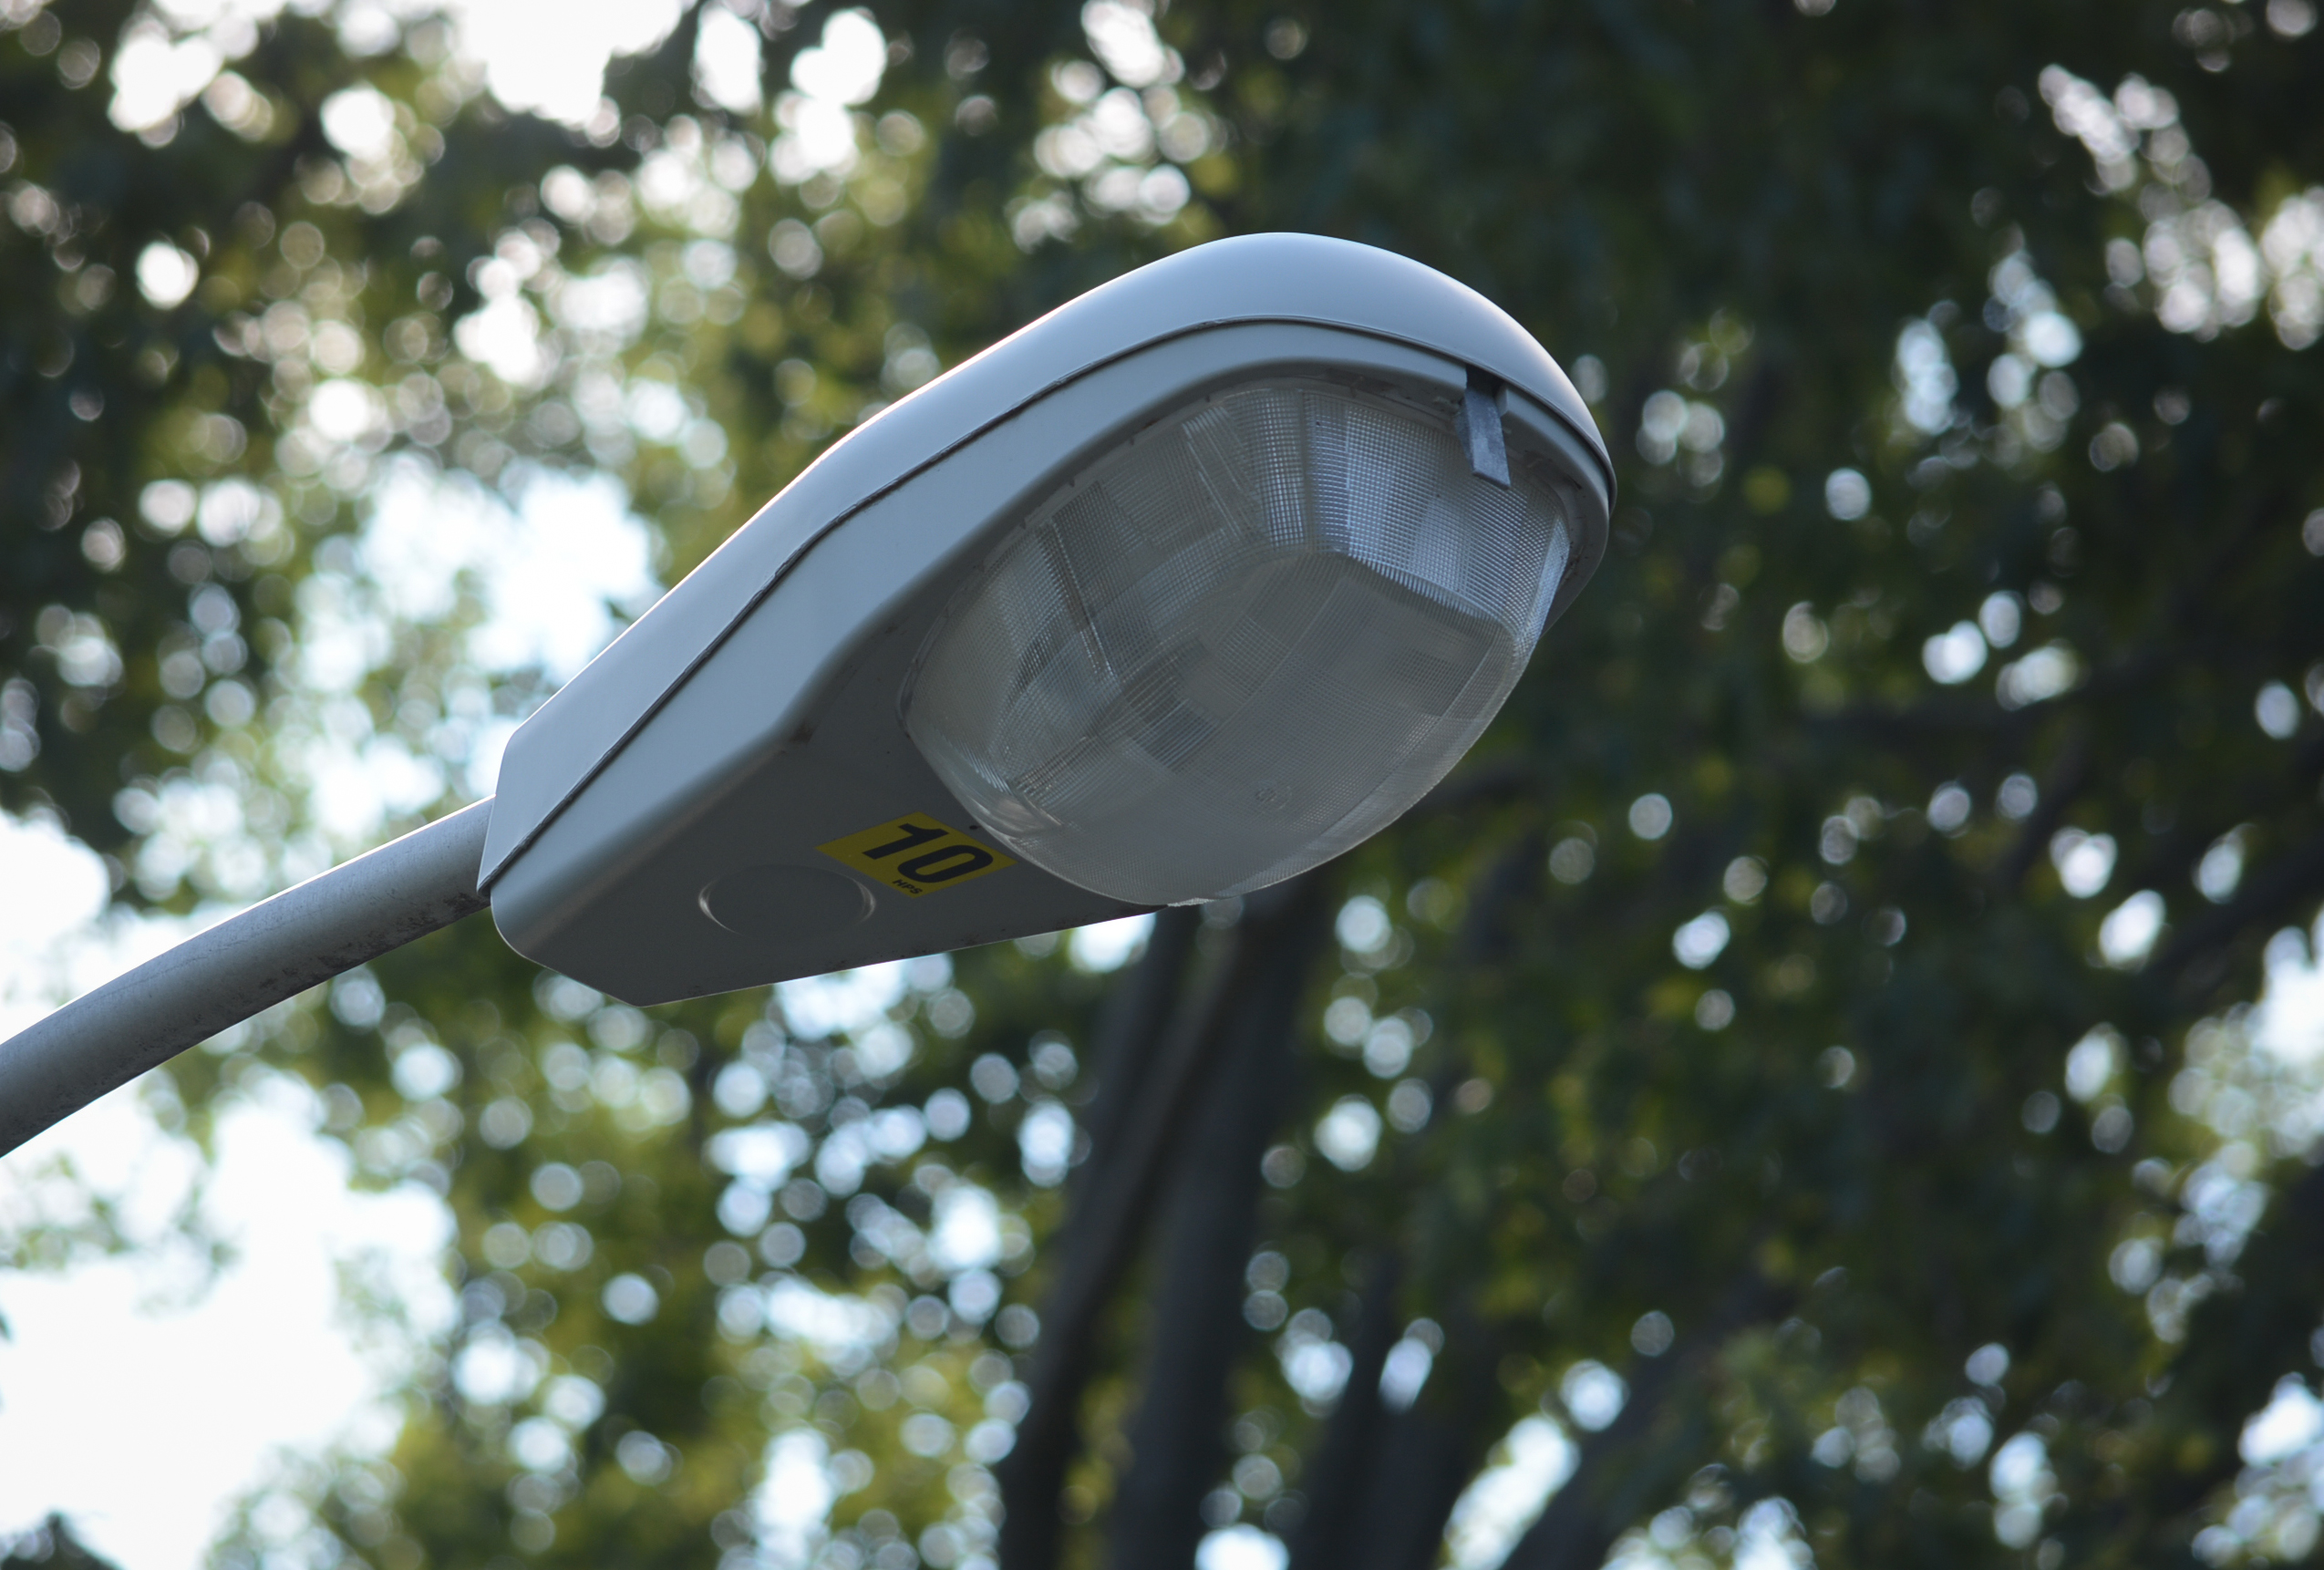 The Village Of Kings Point Is Hoping To Upgrade Its 200 Light Fixtures More Energy